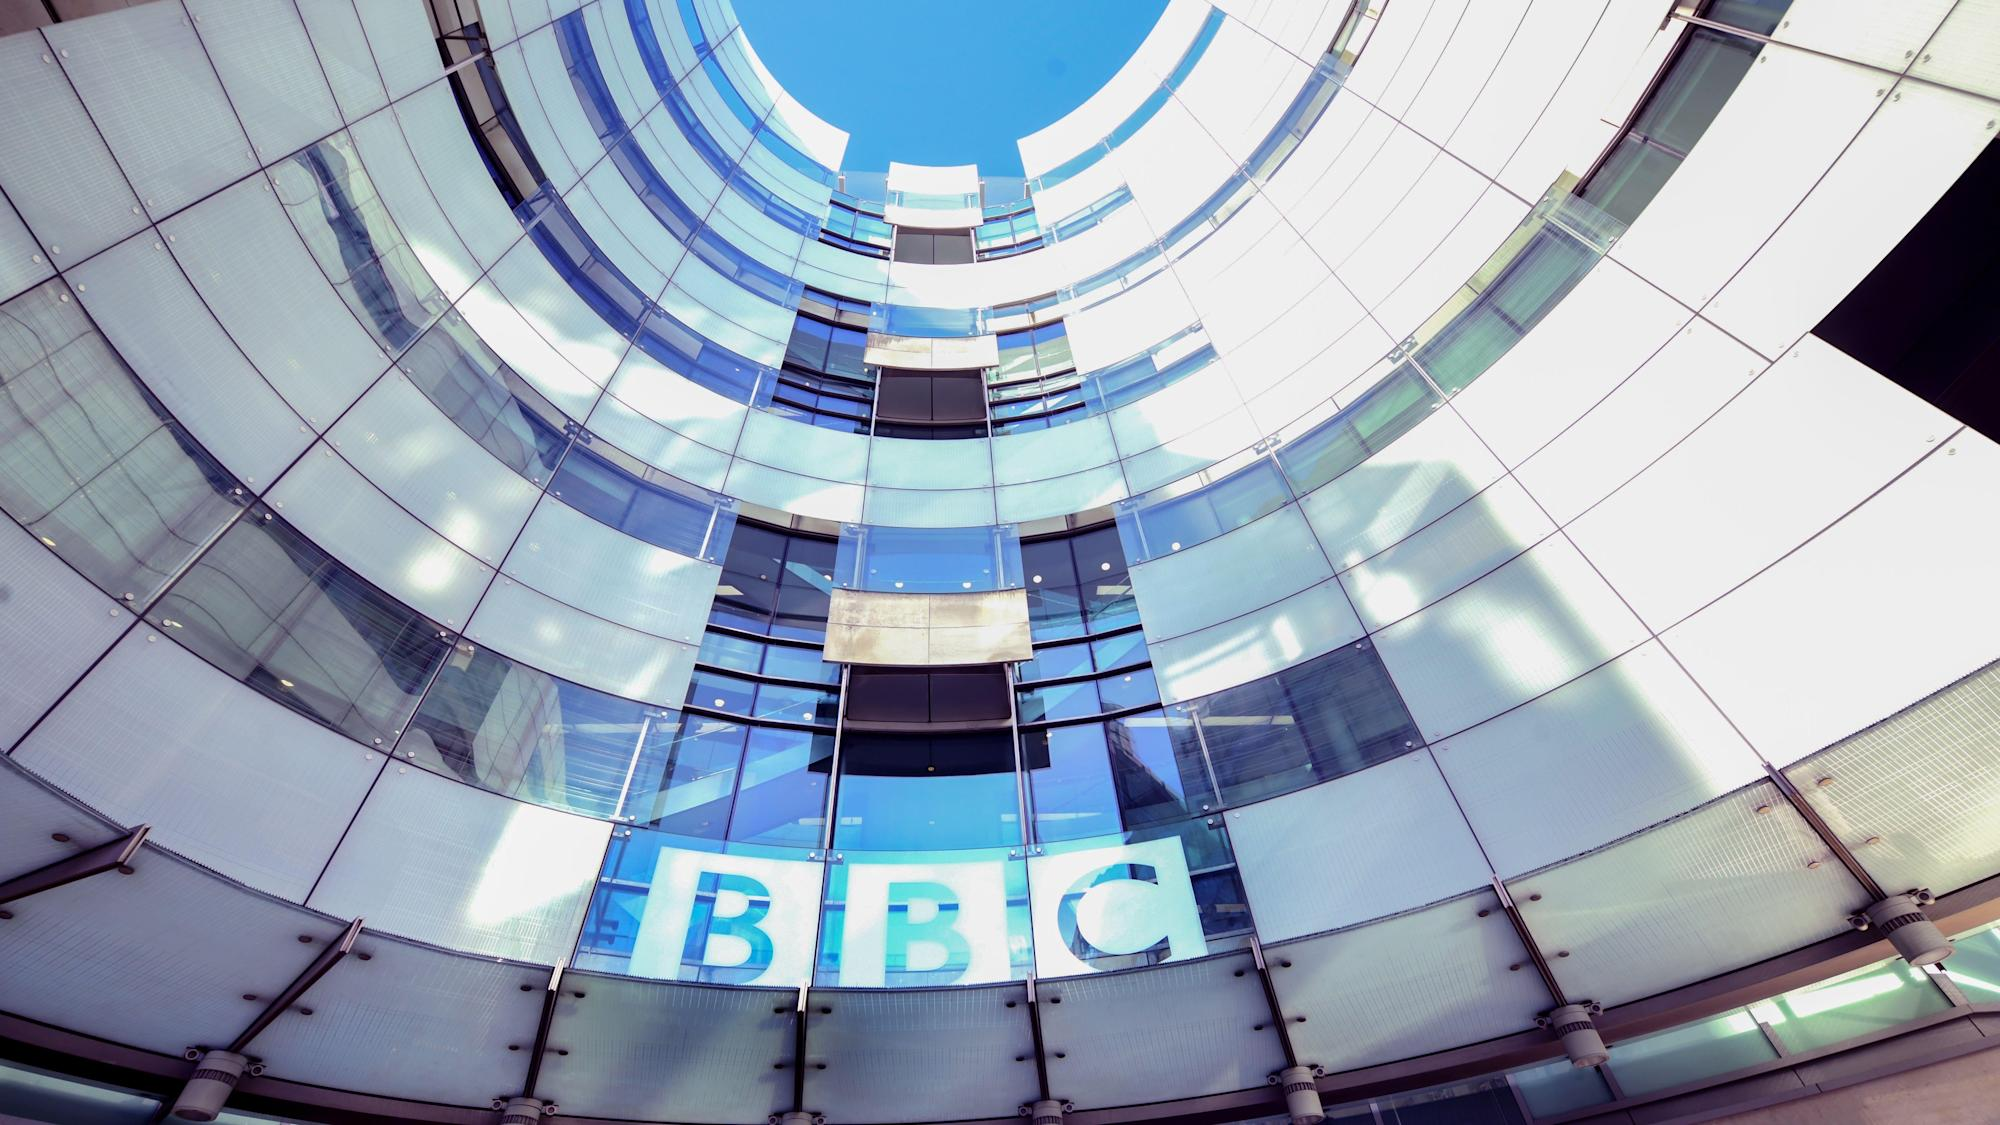 Ex-Panorama producer says BBC should make it easier for whistleblowers